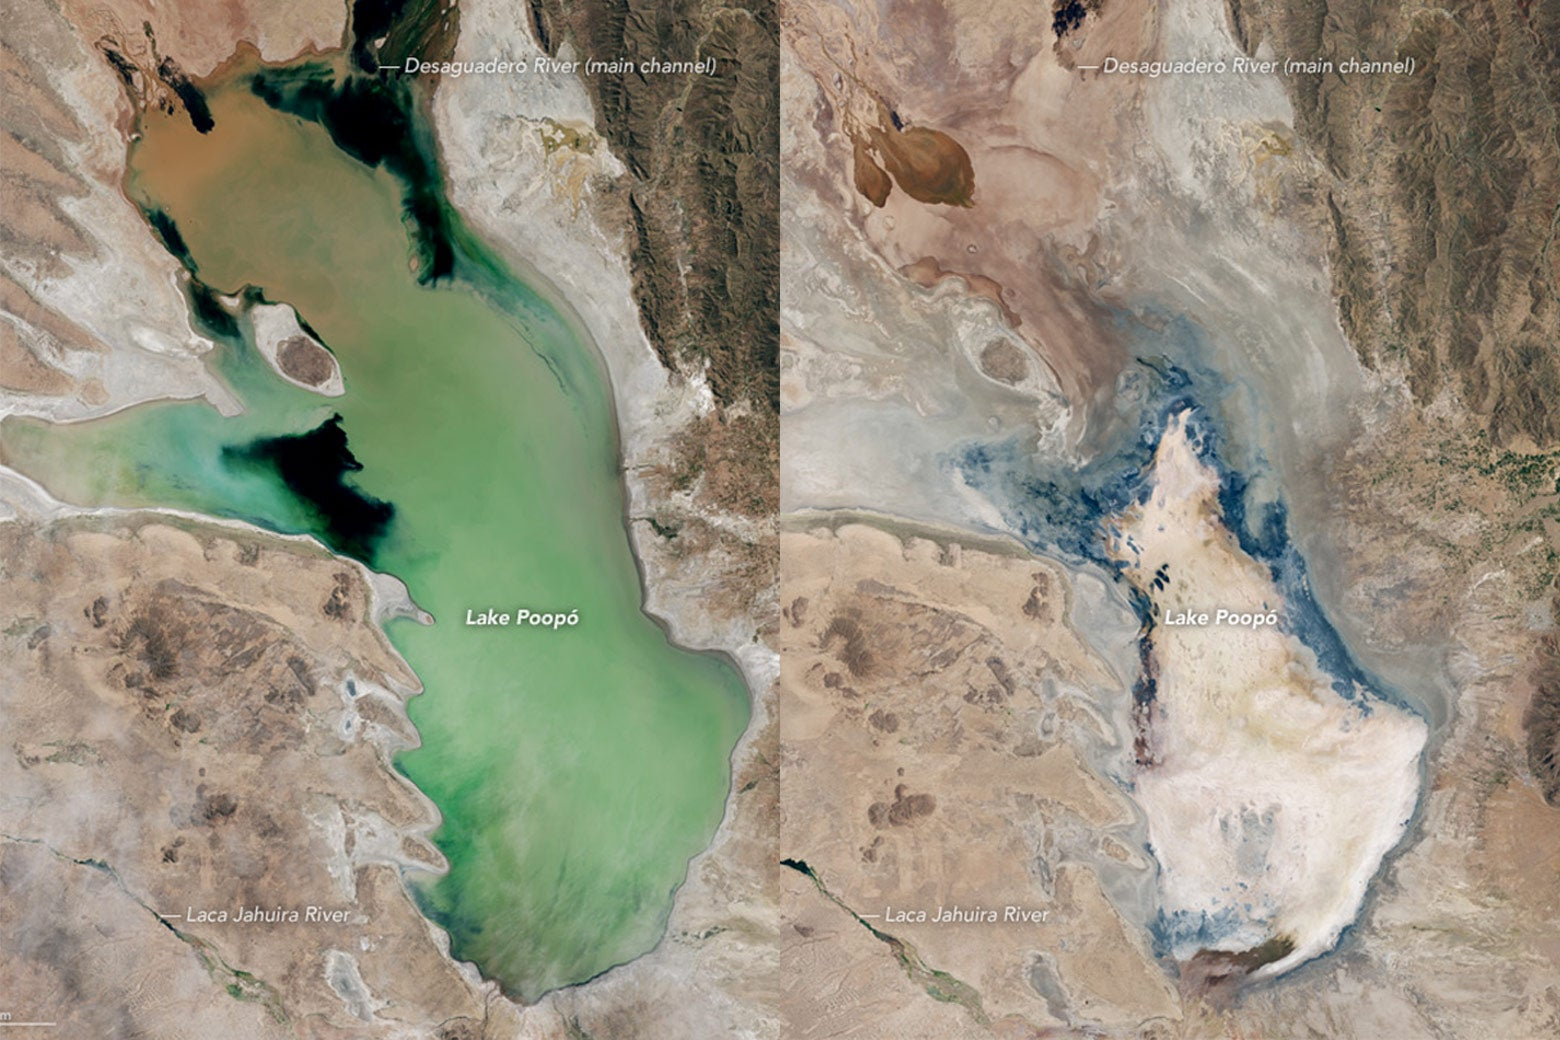 NASA. Lake Poopó—once Bolivia's second-largest lake and an important fishing resource for local communities—has essentially dried up